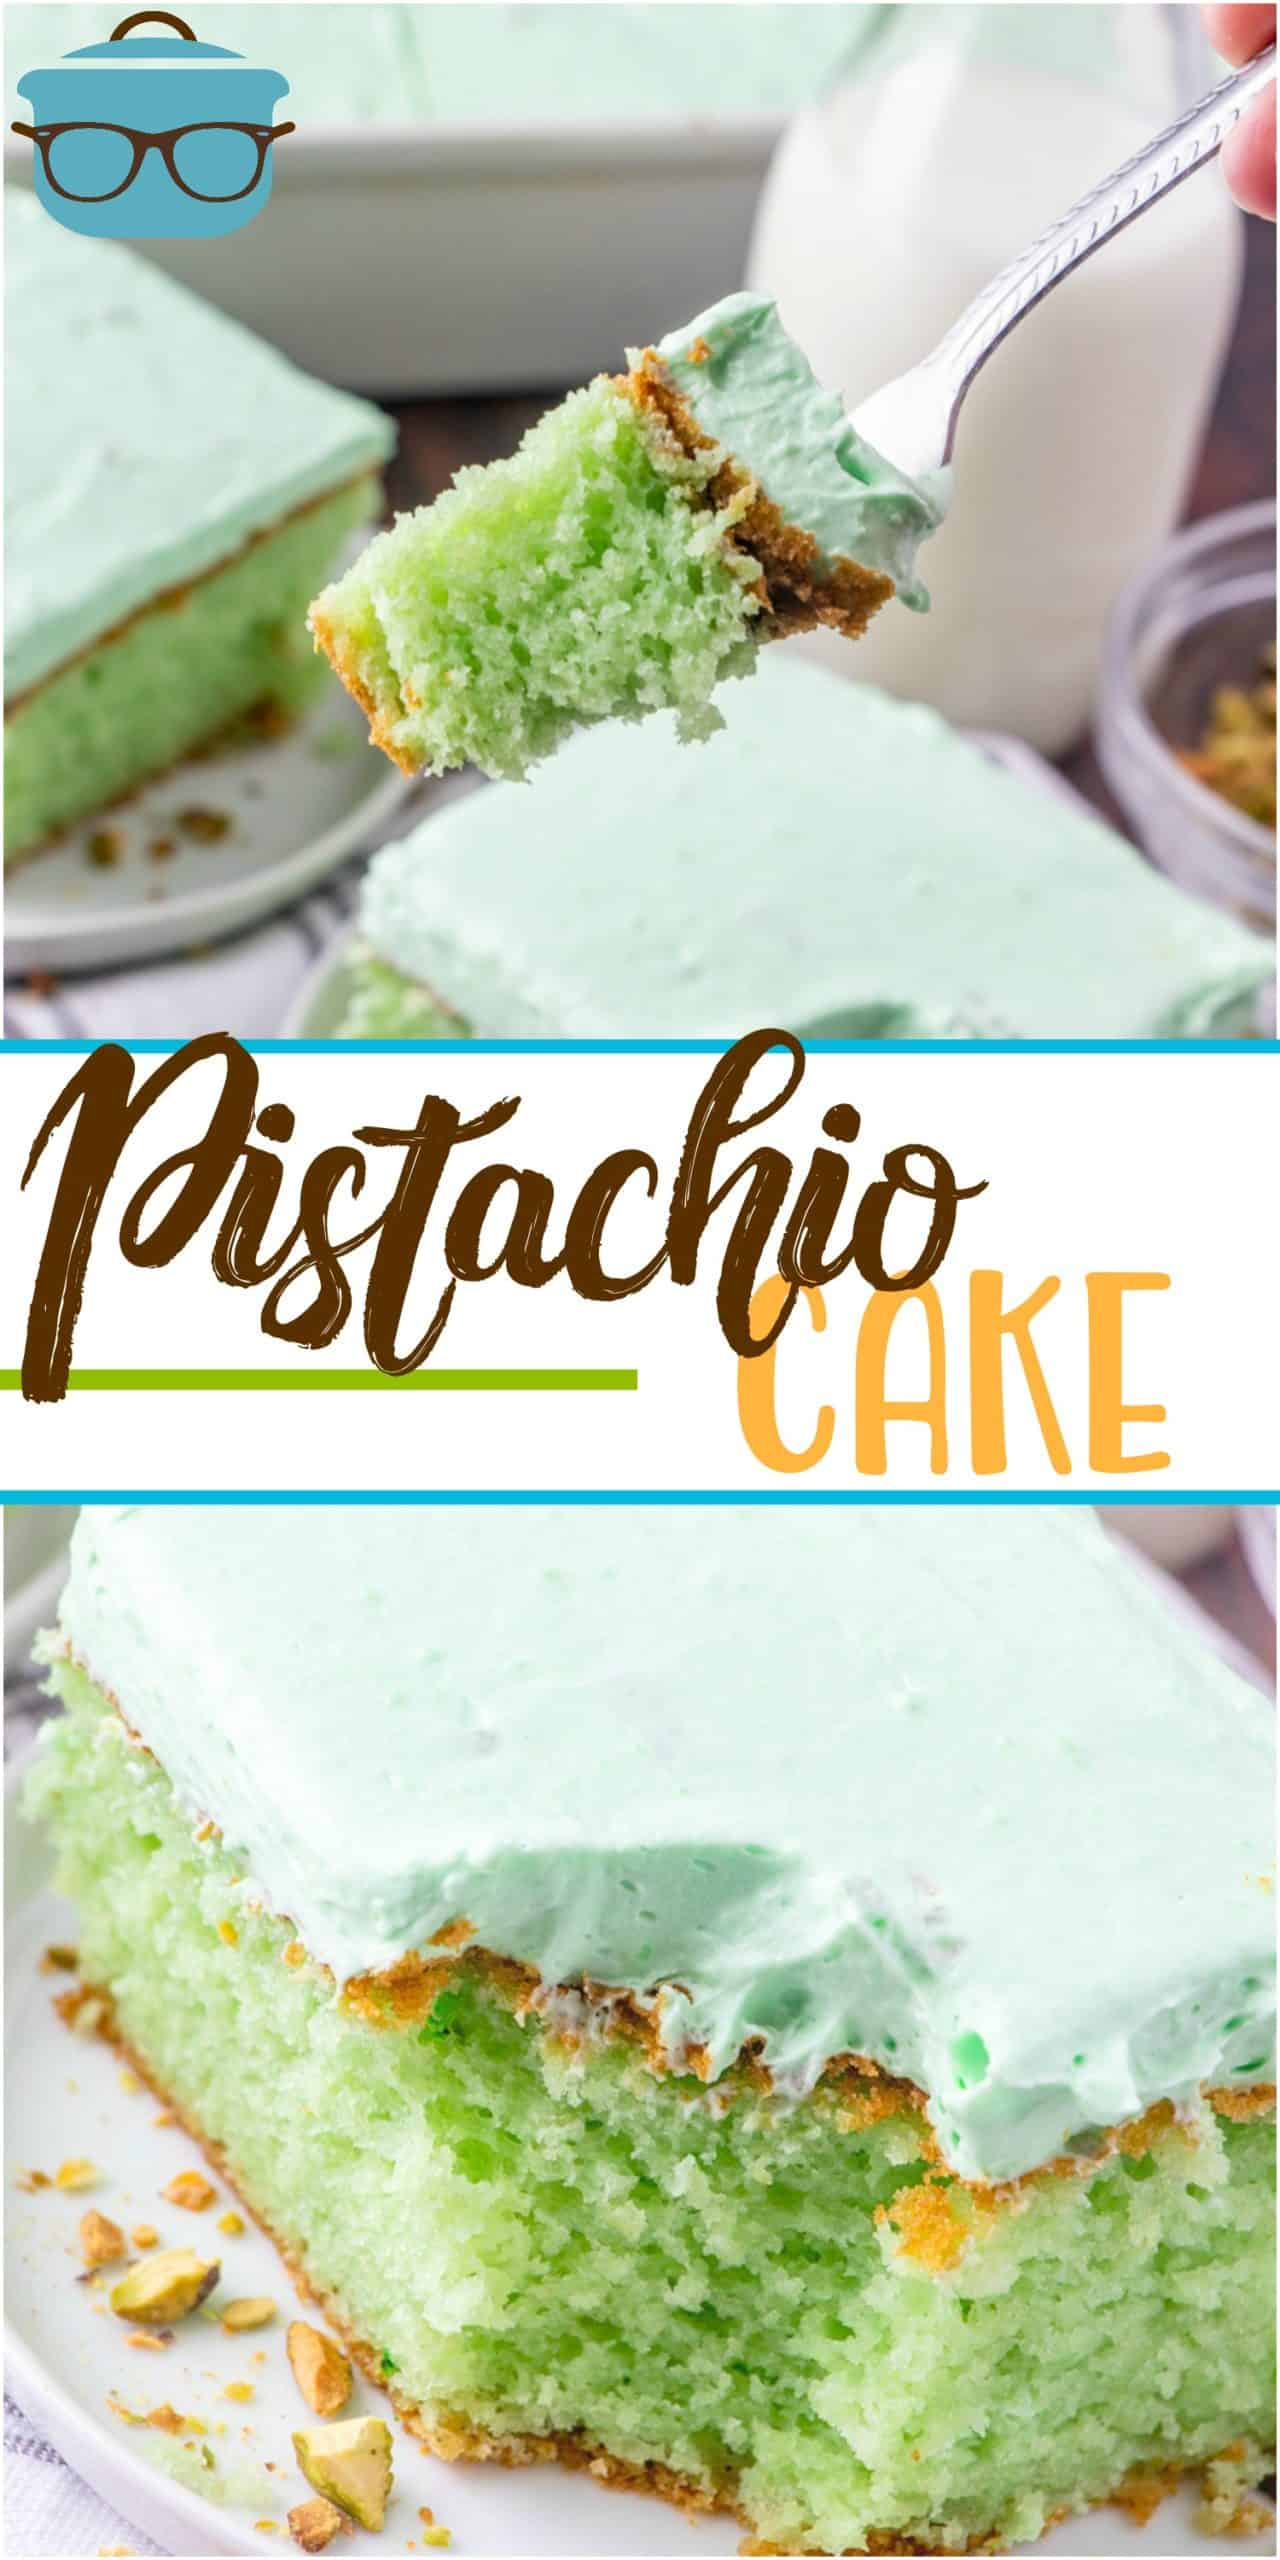 This easy Pistachio Cake recipe starts with a boxed cake mix and it is transformed into a super yummy cake that tastes homemade!